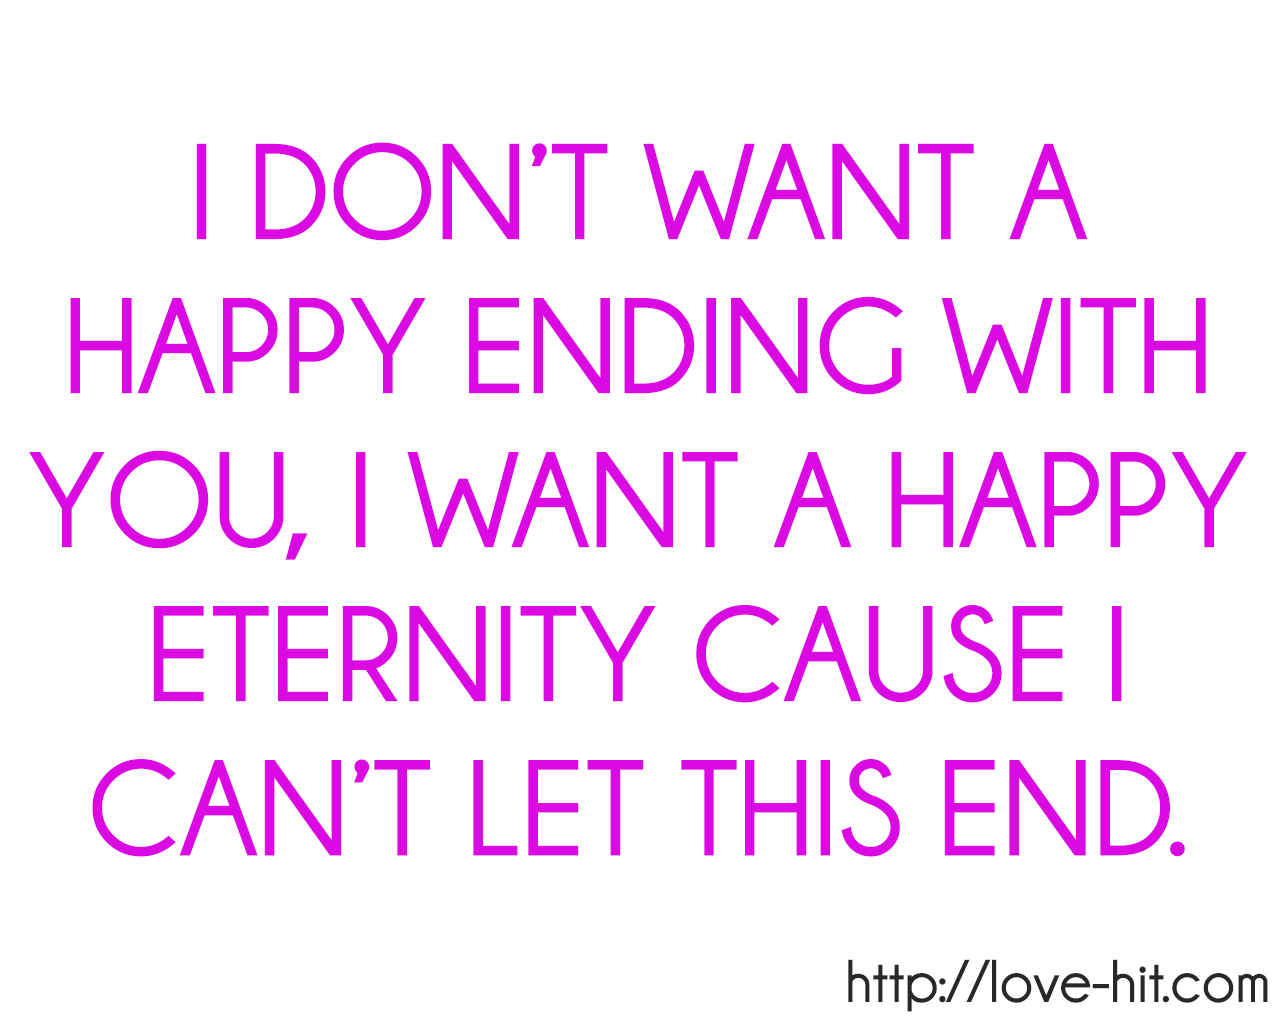 I DON'T WANT A HAPPY ENDING WITH YOU, I WANT A HAPPY ETERNITY CAUSE I CAN'T LET THIS END